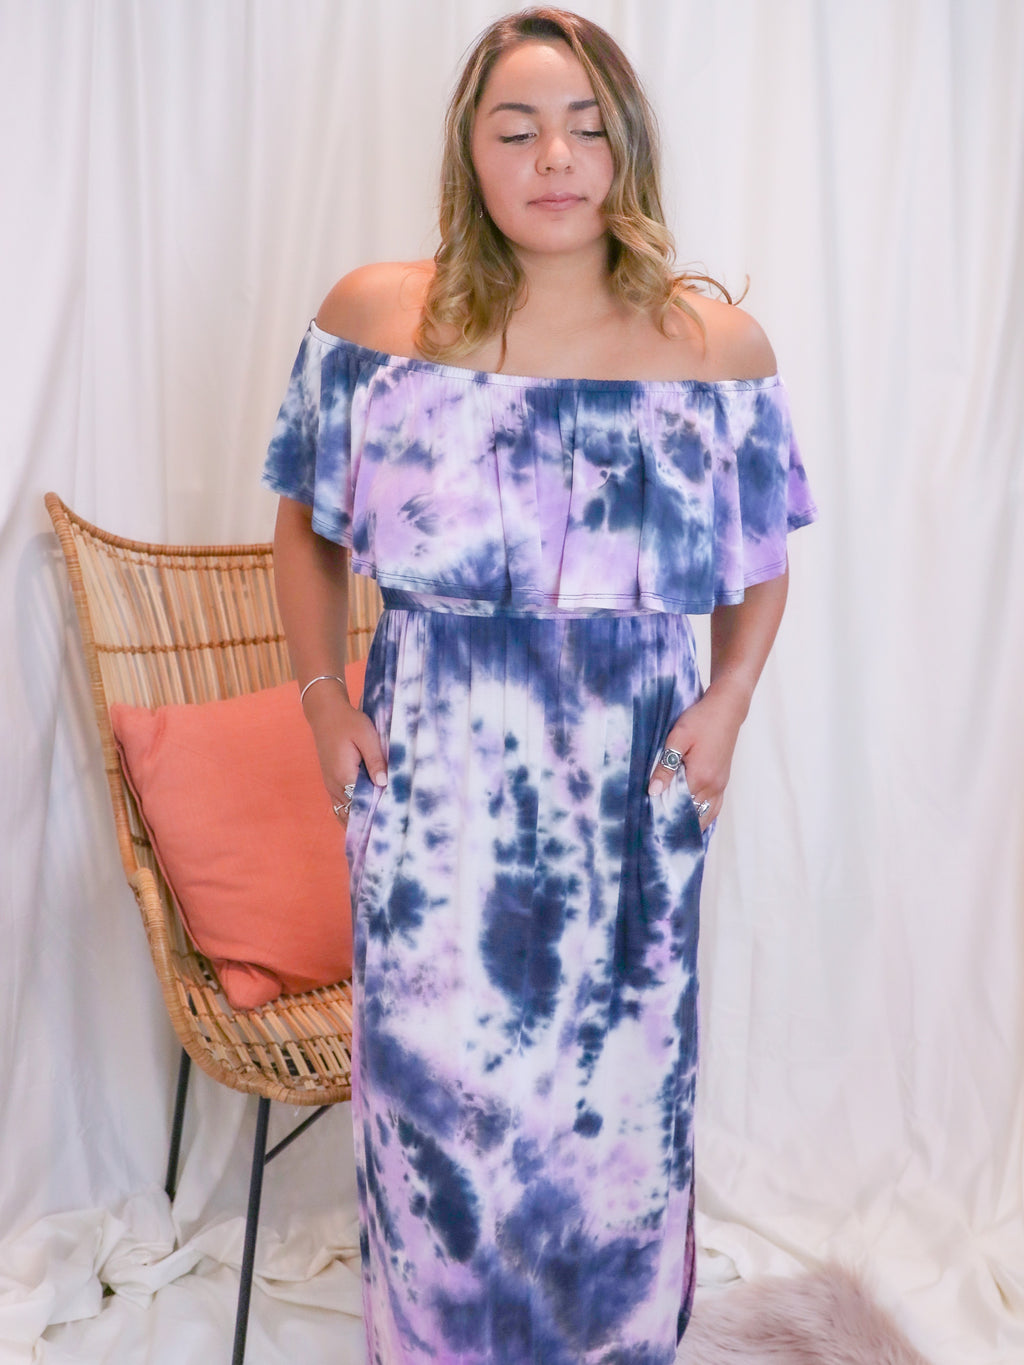 Kauai Island Dress